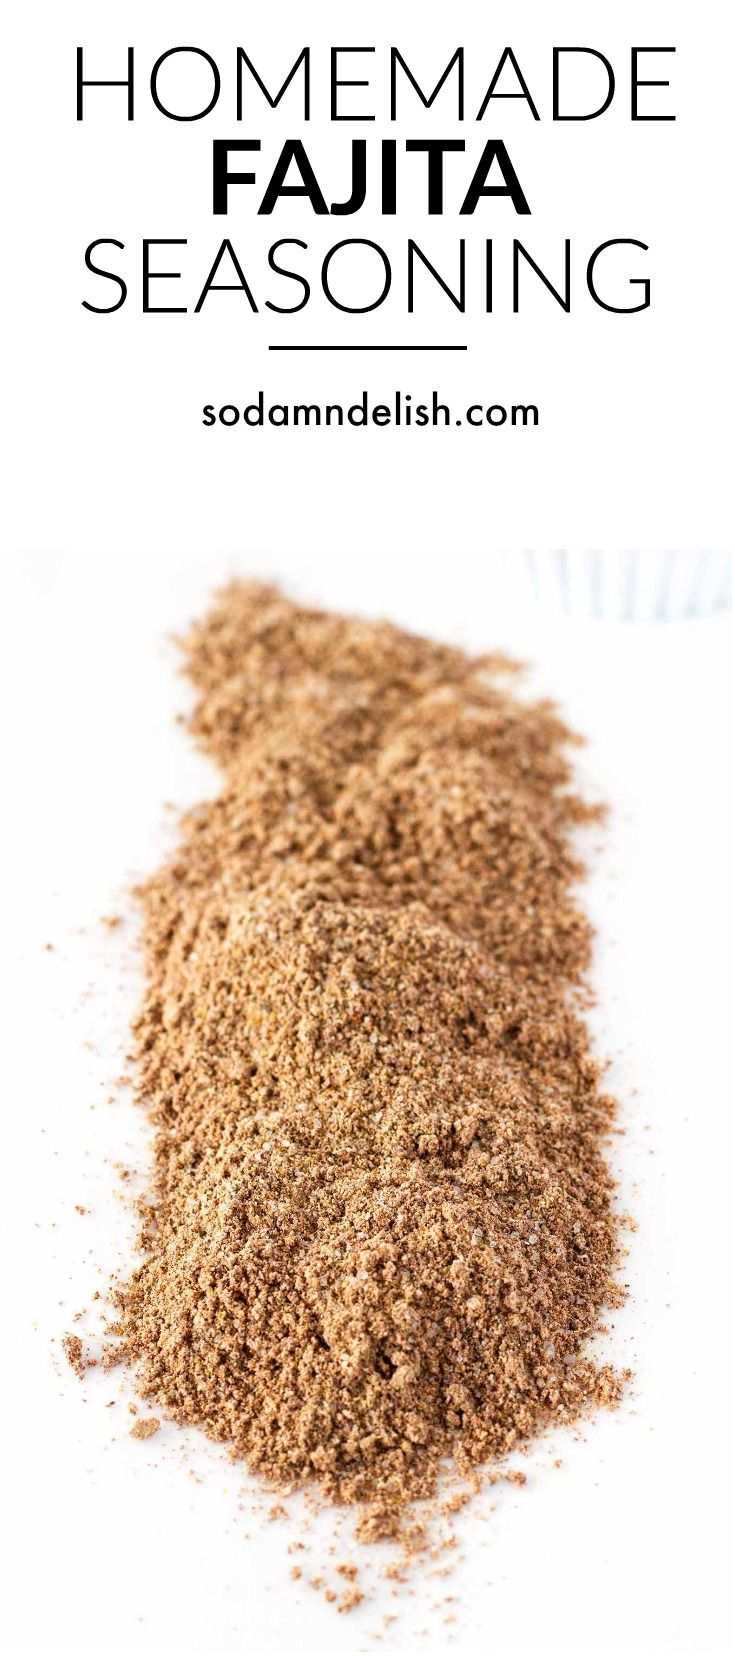 Homemade Fajita Seasoning Mix #homemadefajitaseasoning